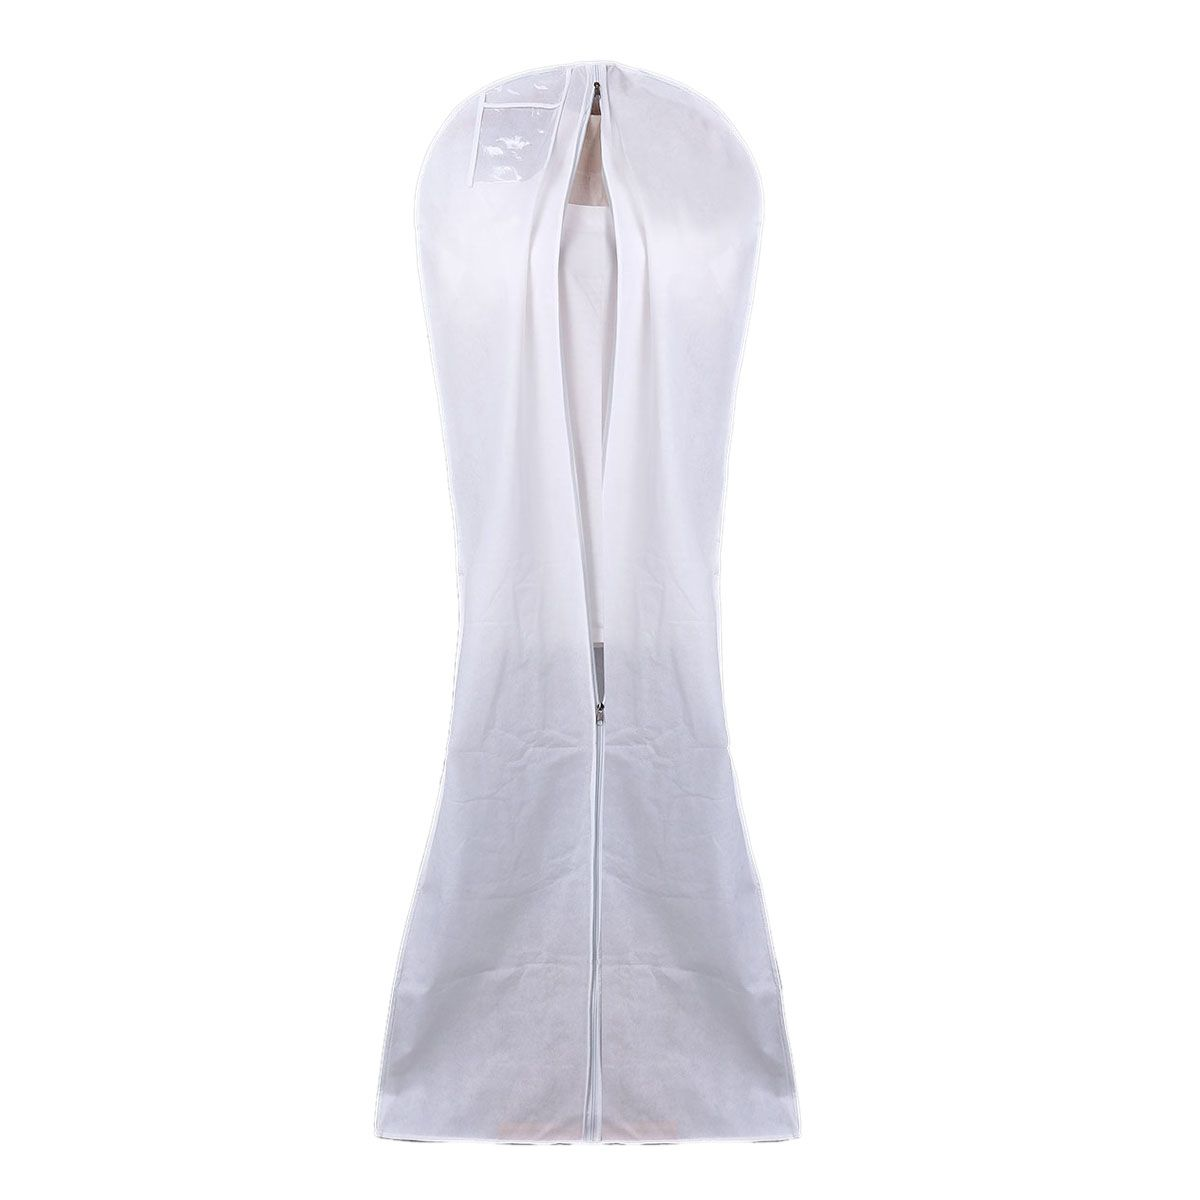 Extra Large Wedding Dress Cover Gown Garment Clothes Storage Zip Bag Dustproof